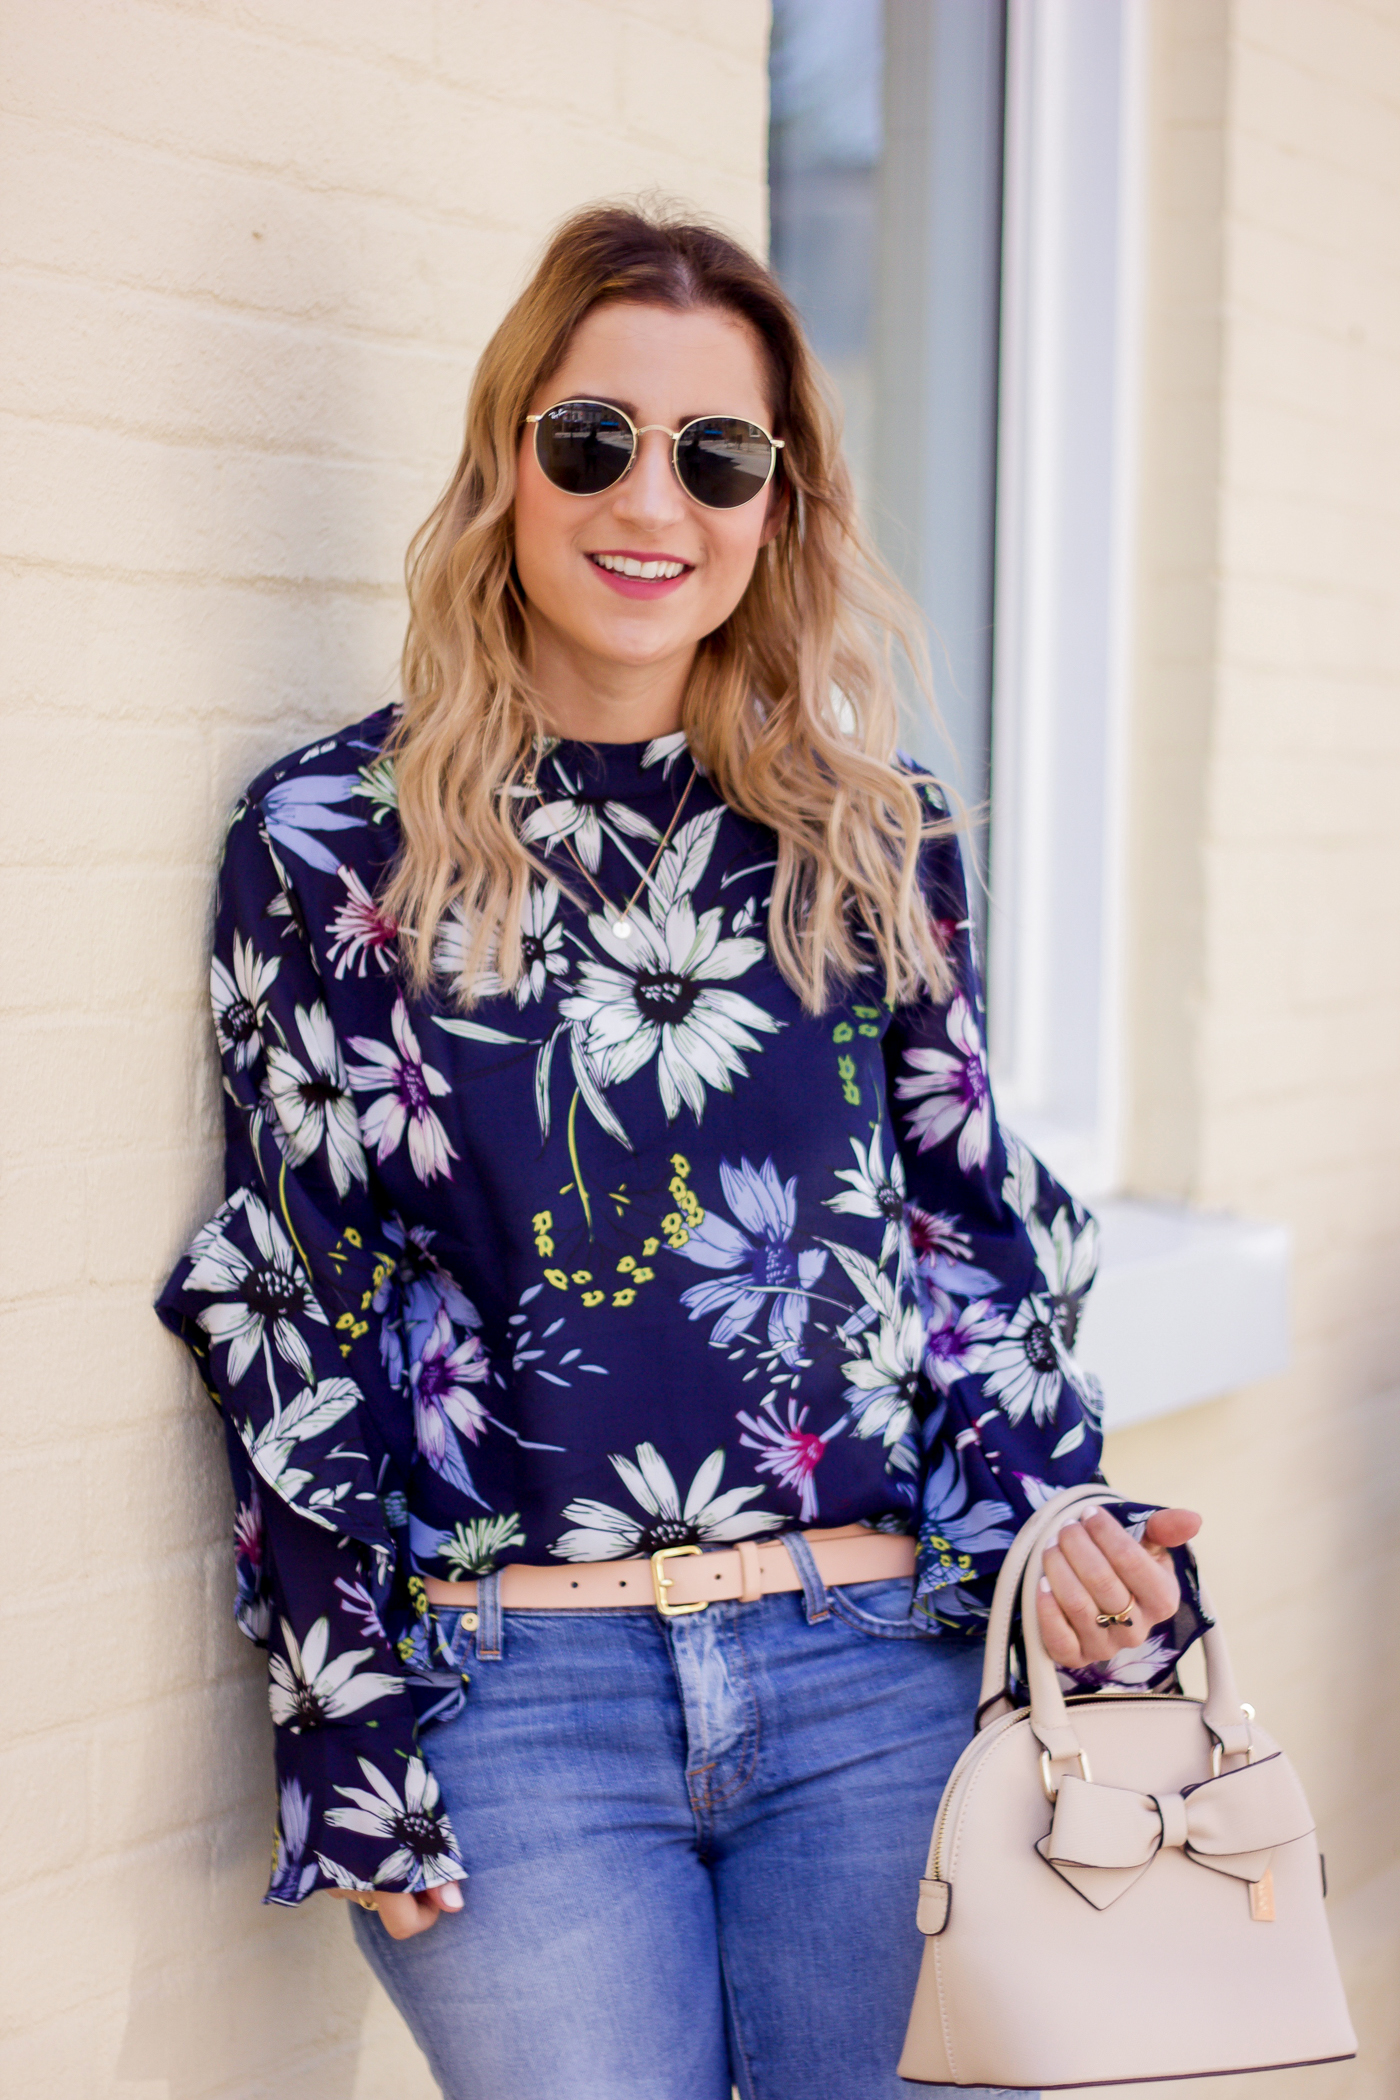 Cute spring outfit idea from a fashion blogger, with a navy floral blouse and light boyfriend jeans